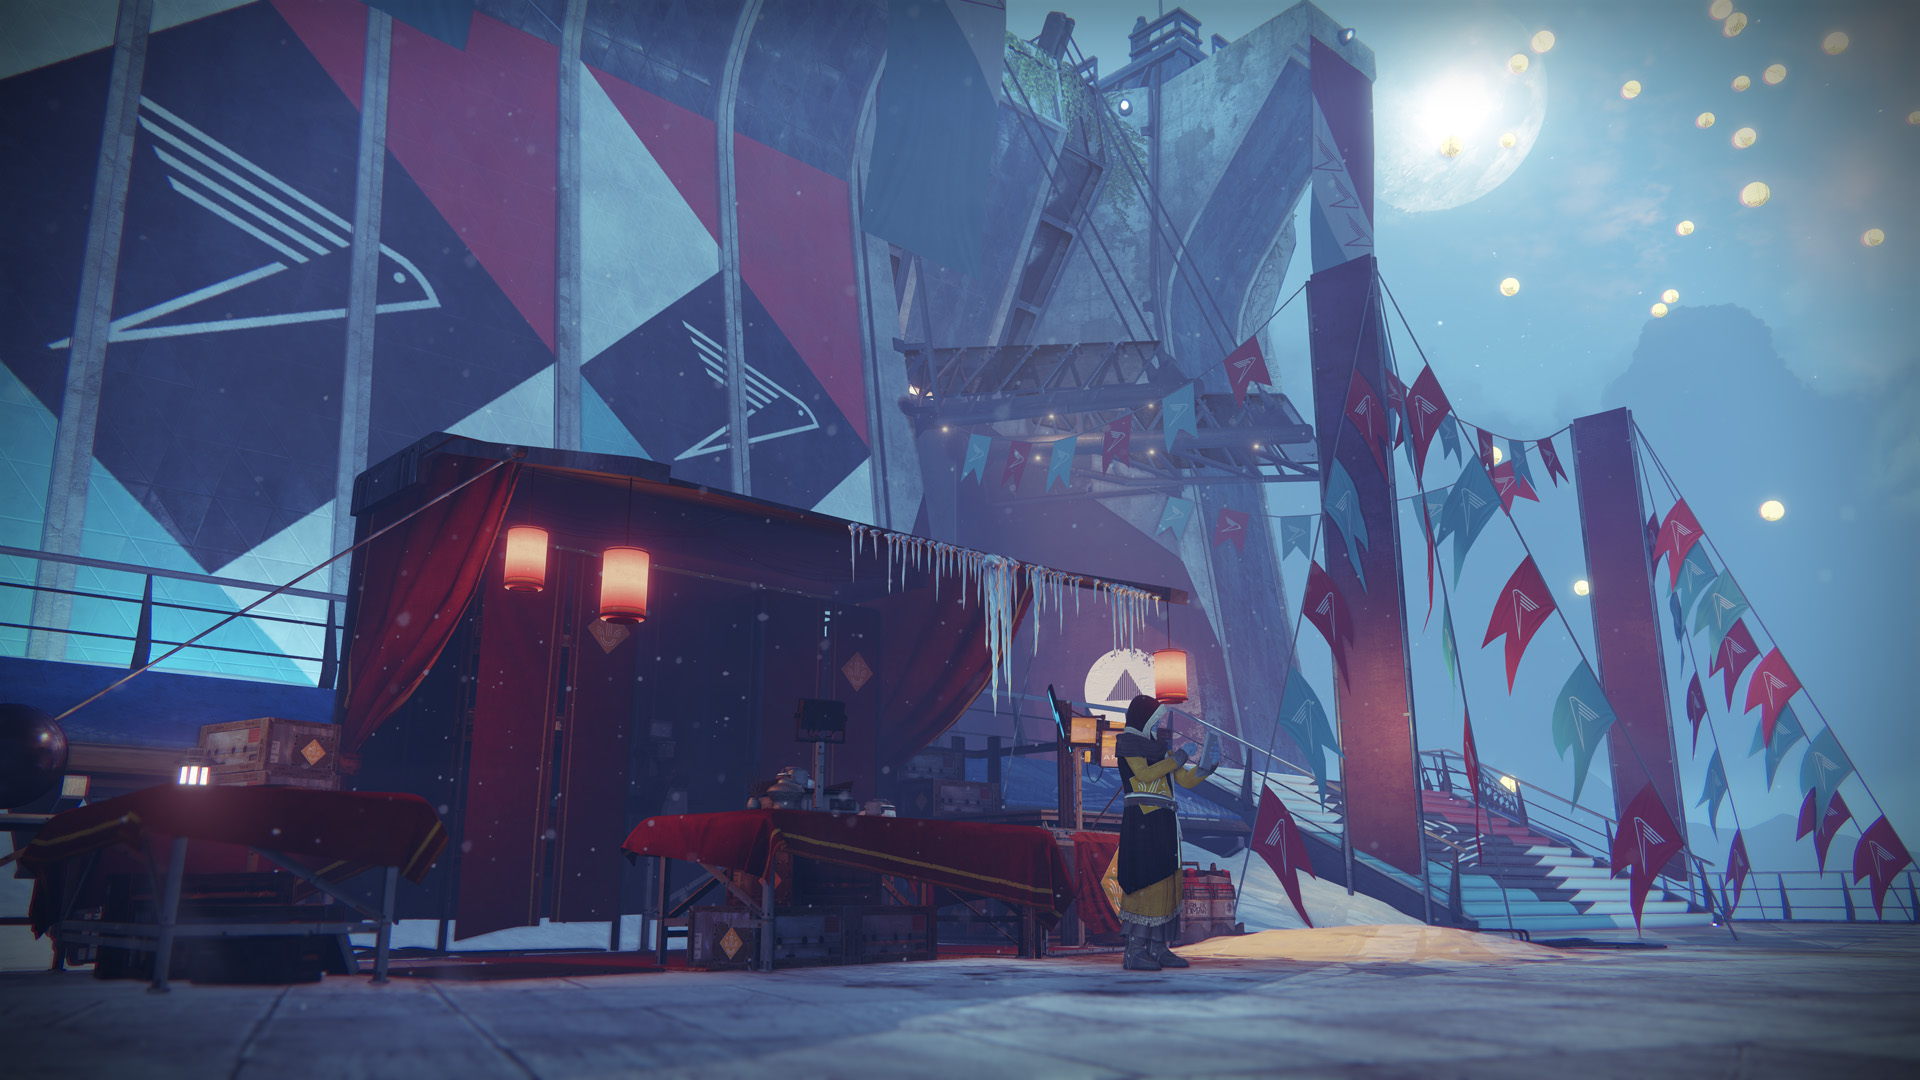 Destiny's holiday update is live, here are all the details - Polygon